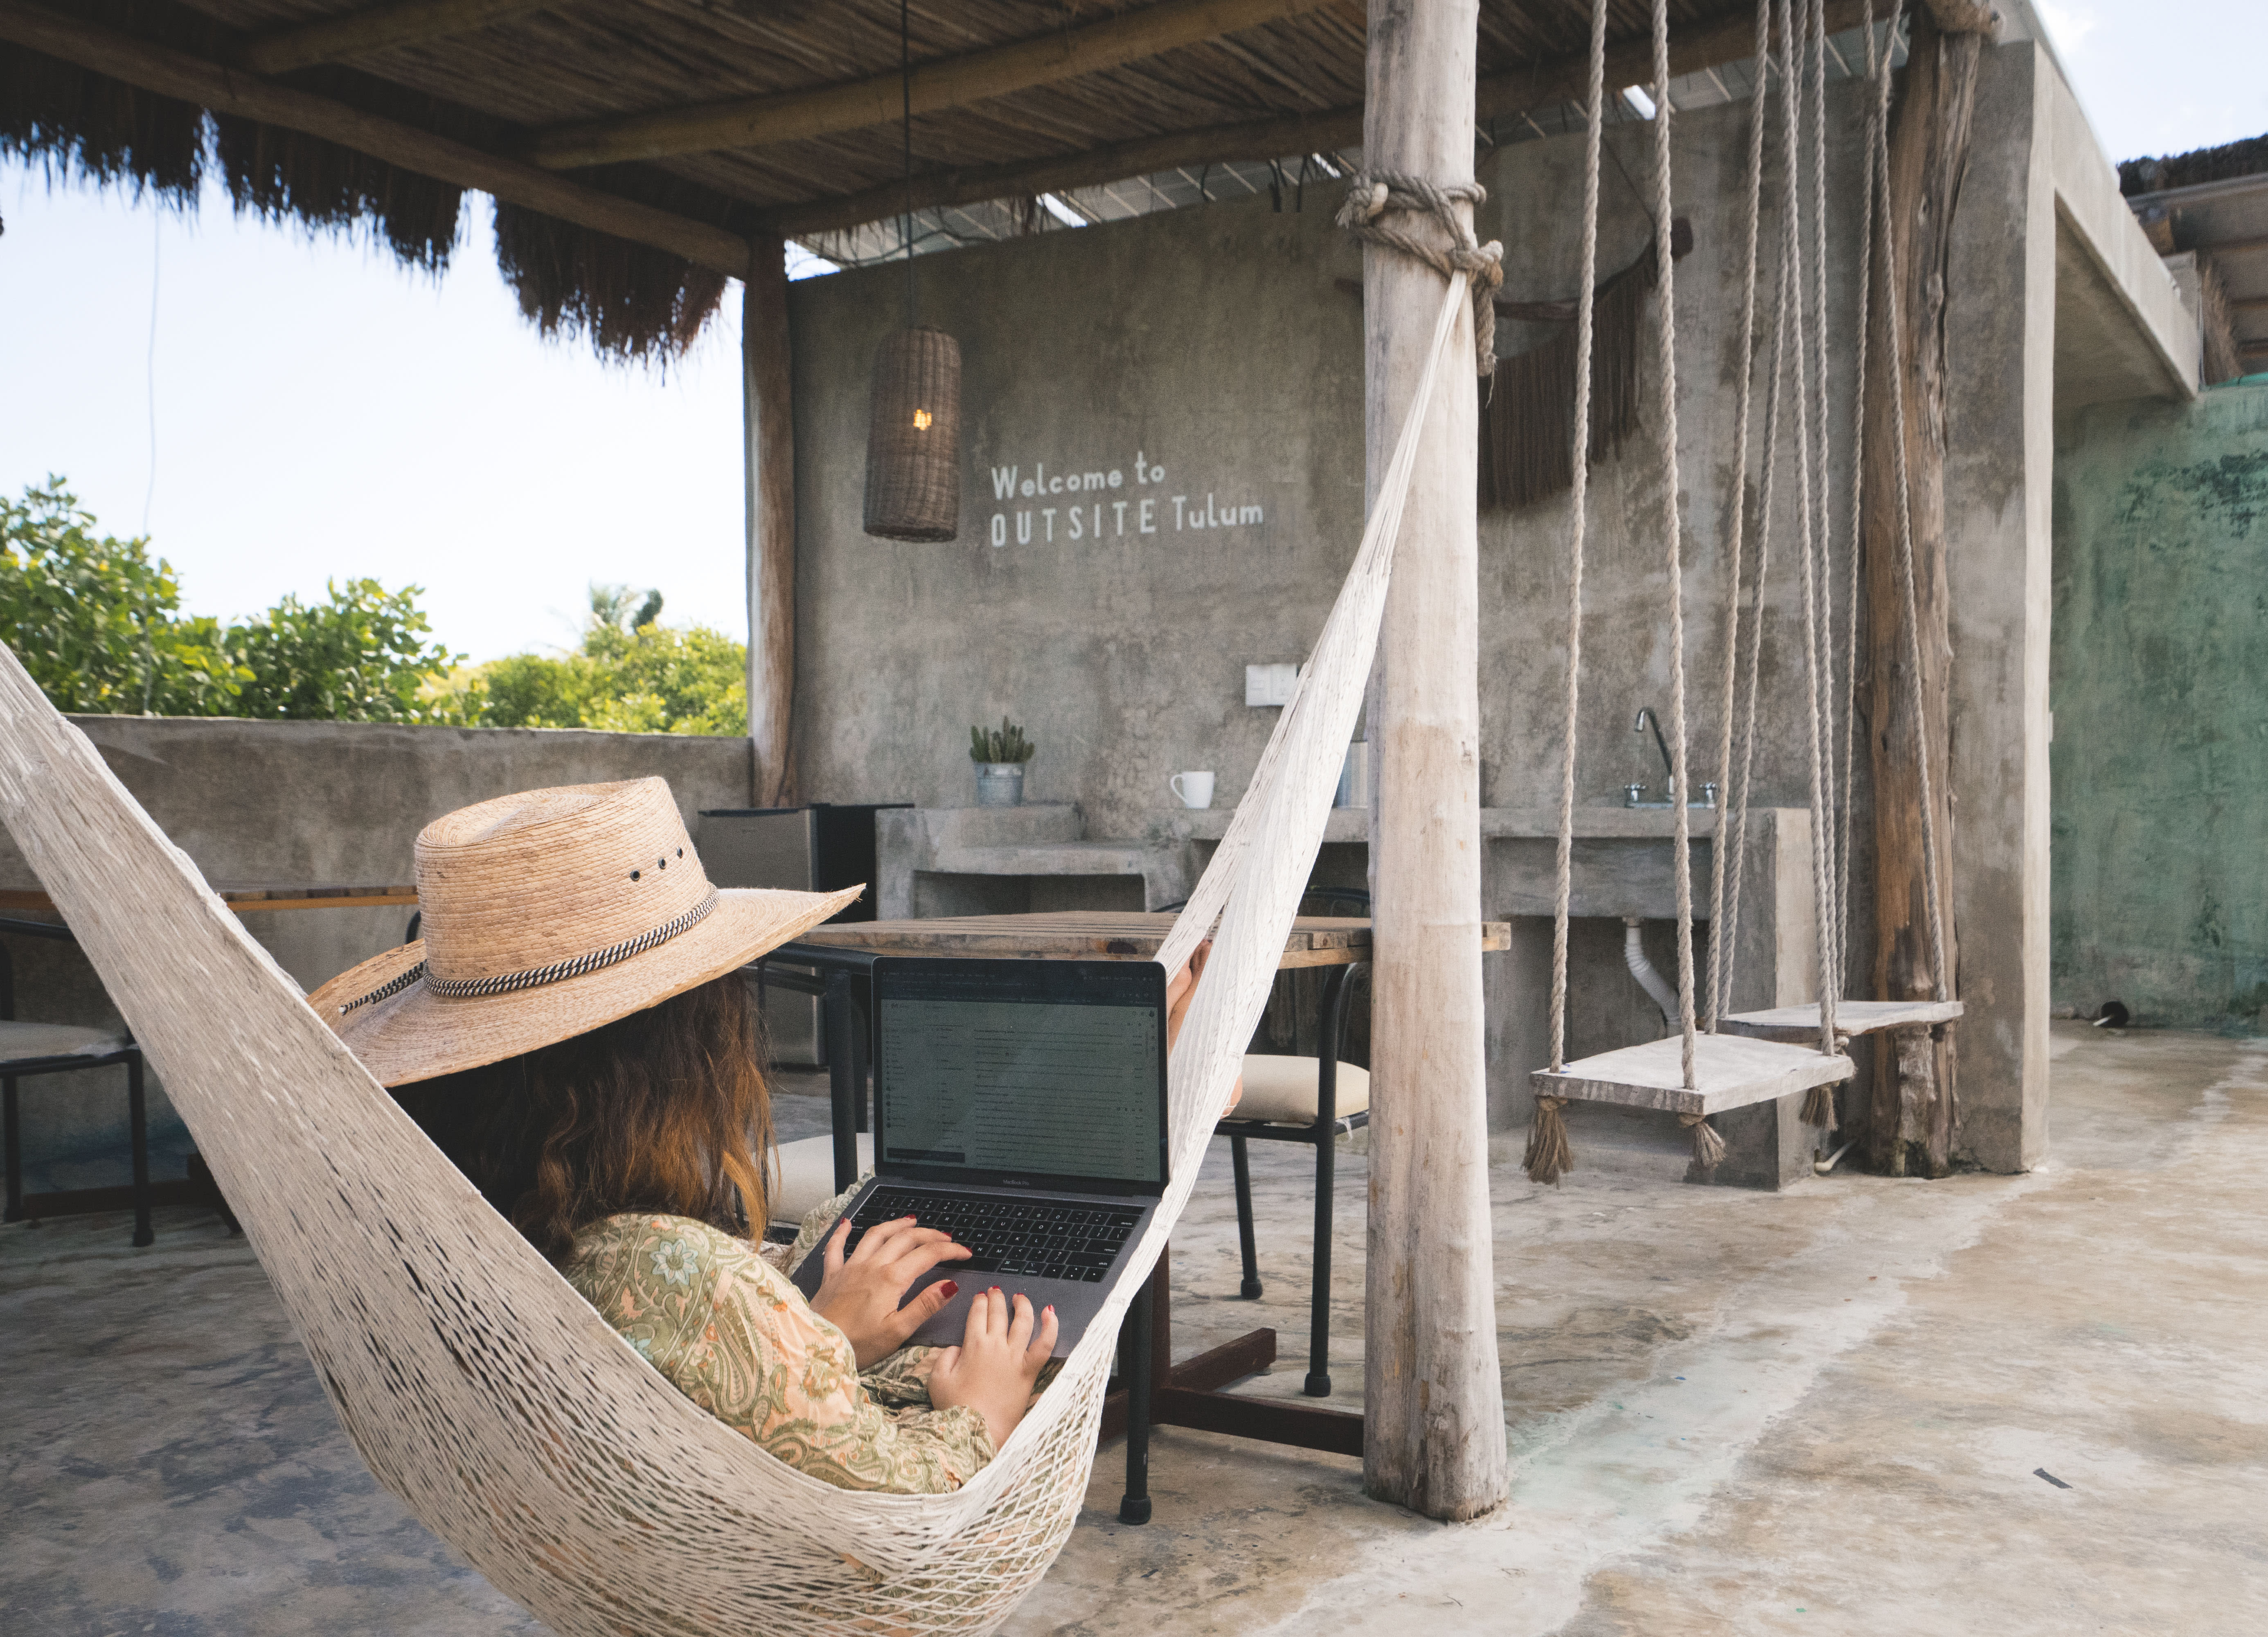 Beyond work from home: Why 'digital nomads' think they're the future of remote life